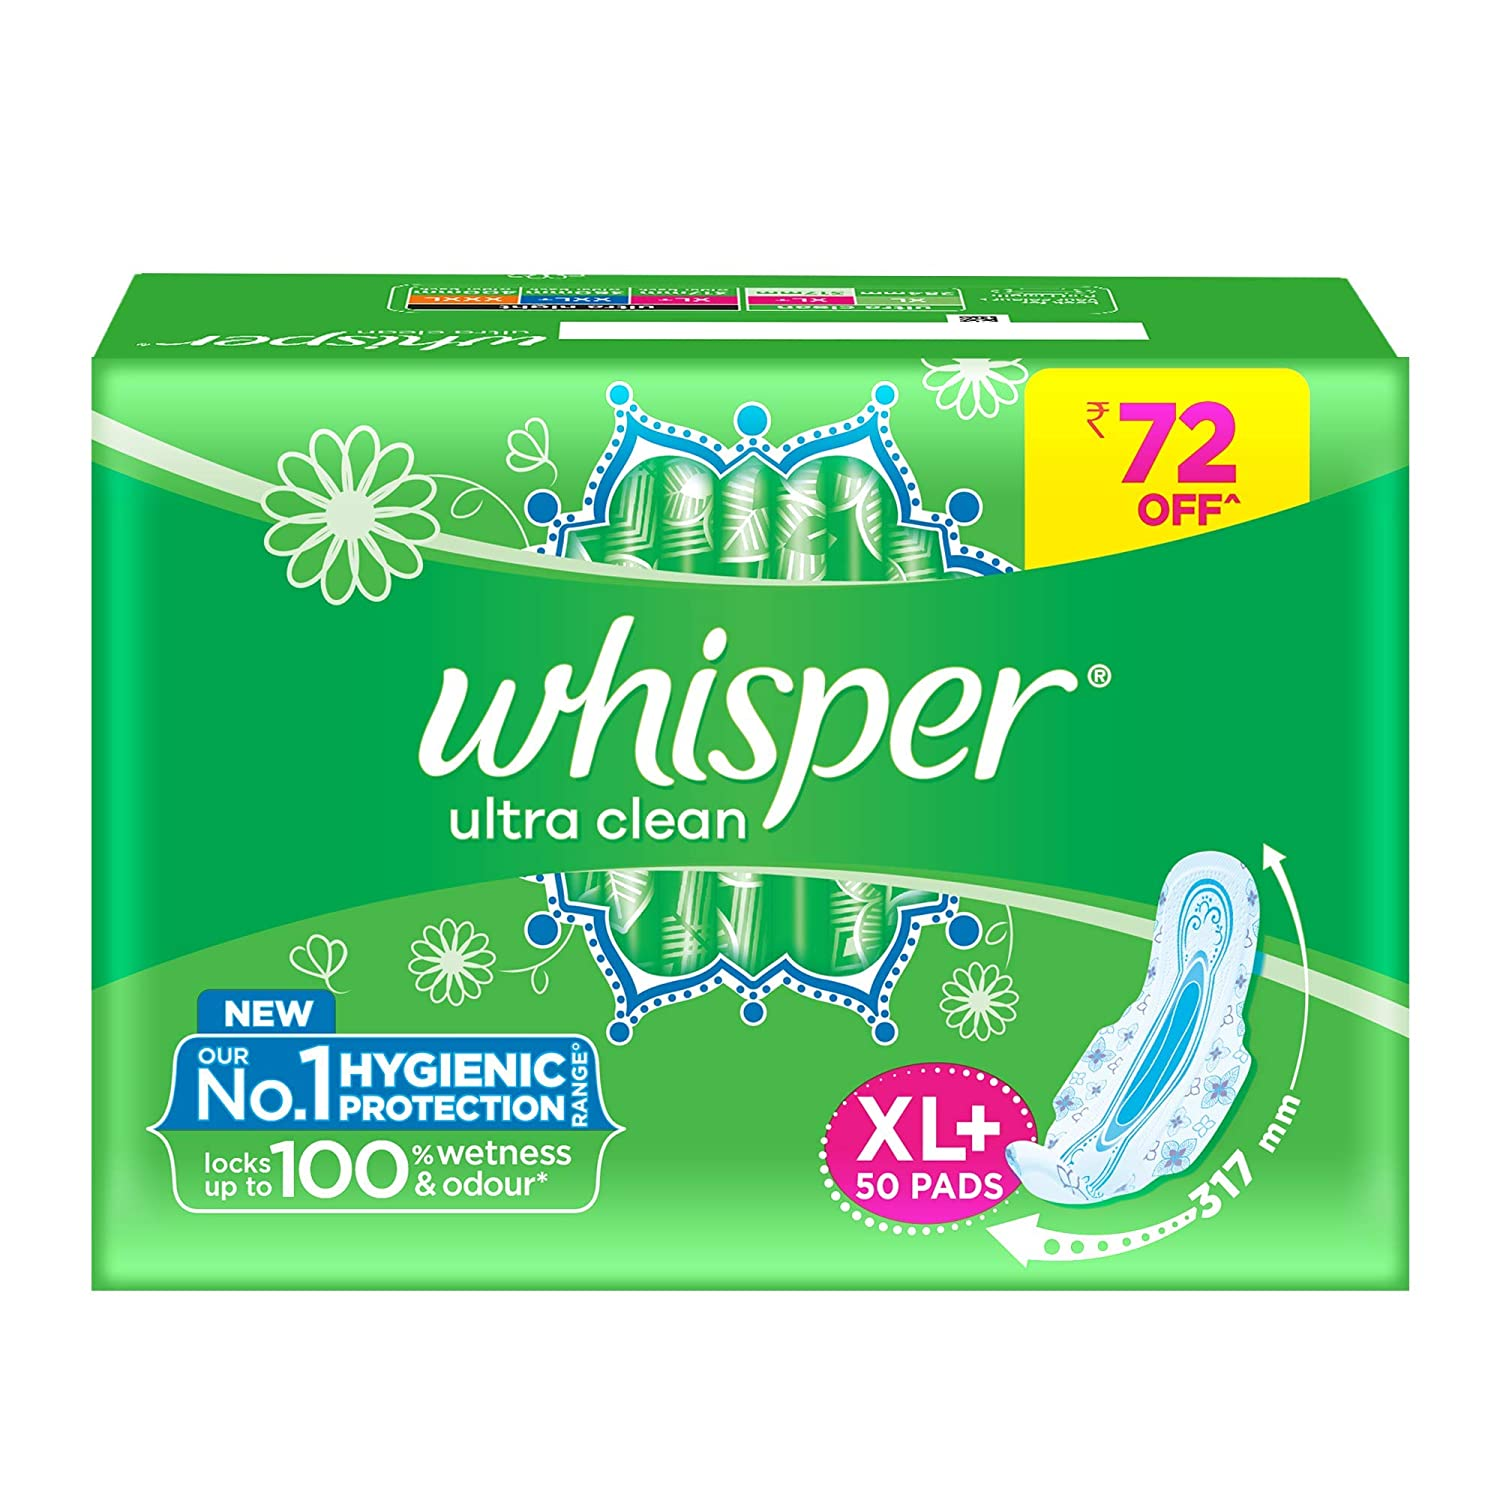 Whisper Ultra Clean Sanitary Pads for Women, XL+ 50 Napkins